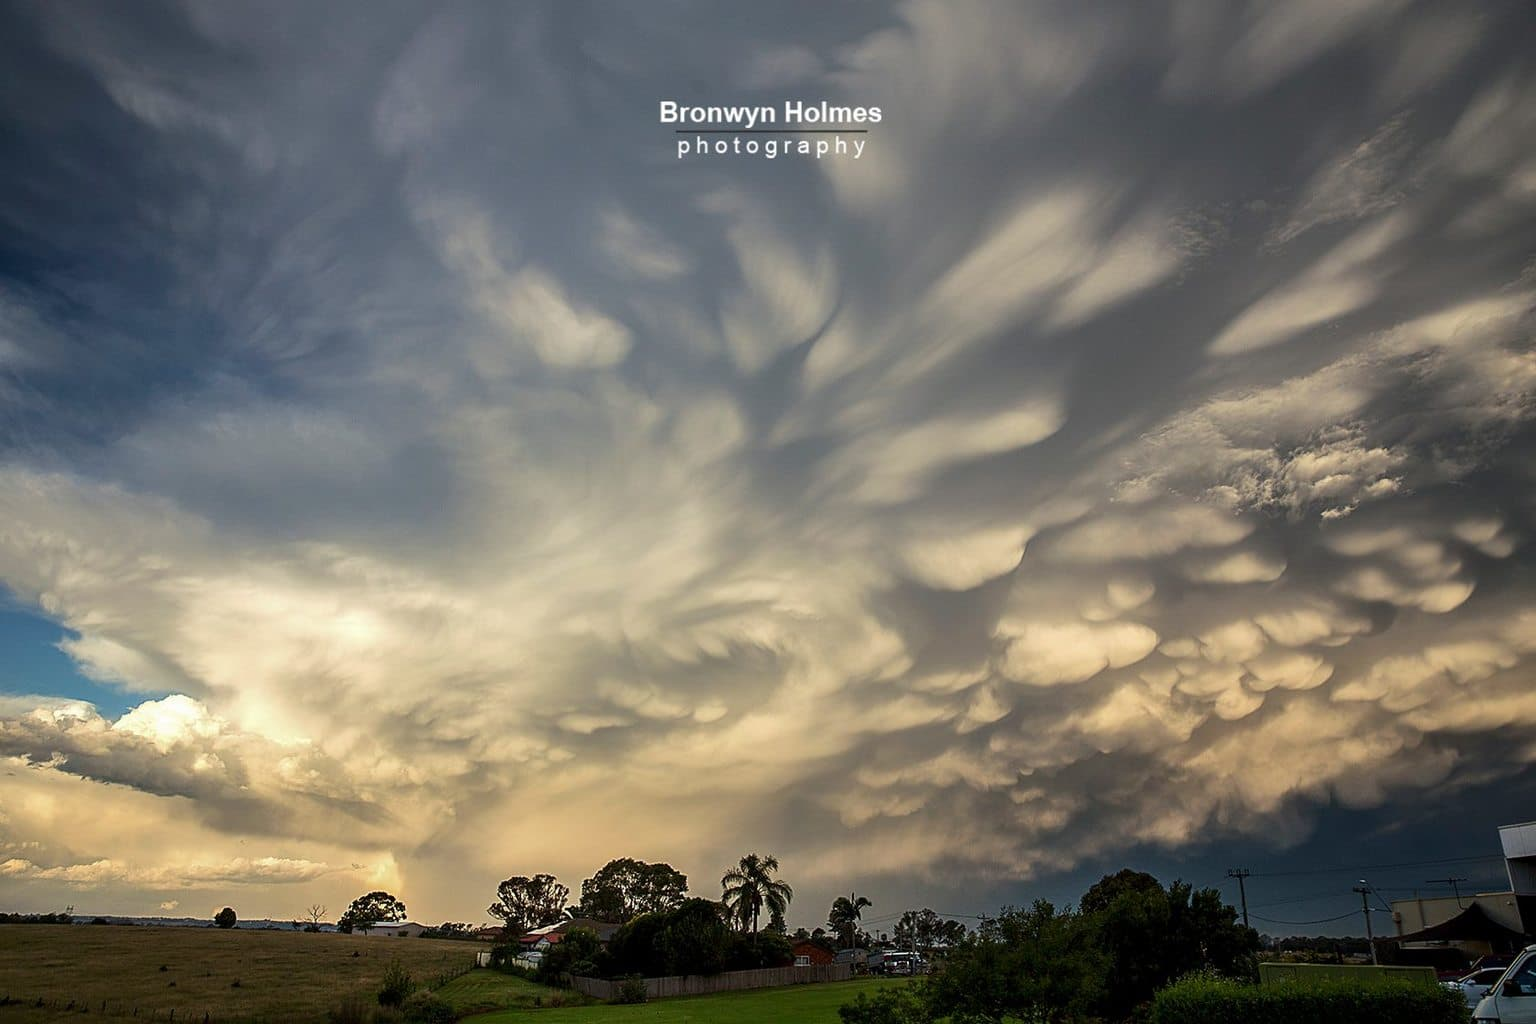 My very first mammatus!!!!!!! In Australia! I'm am so very excited. Never thought I would see anything as awesome as I did today. After the mass storms and flooding this past week I was not expecting more storms so soon and so epic and out of storm season!